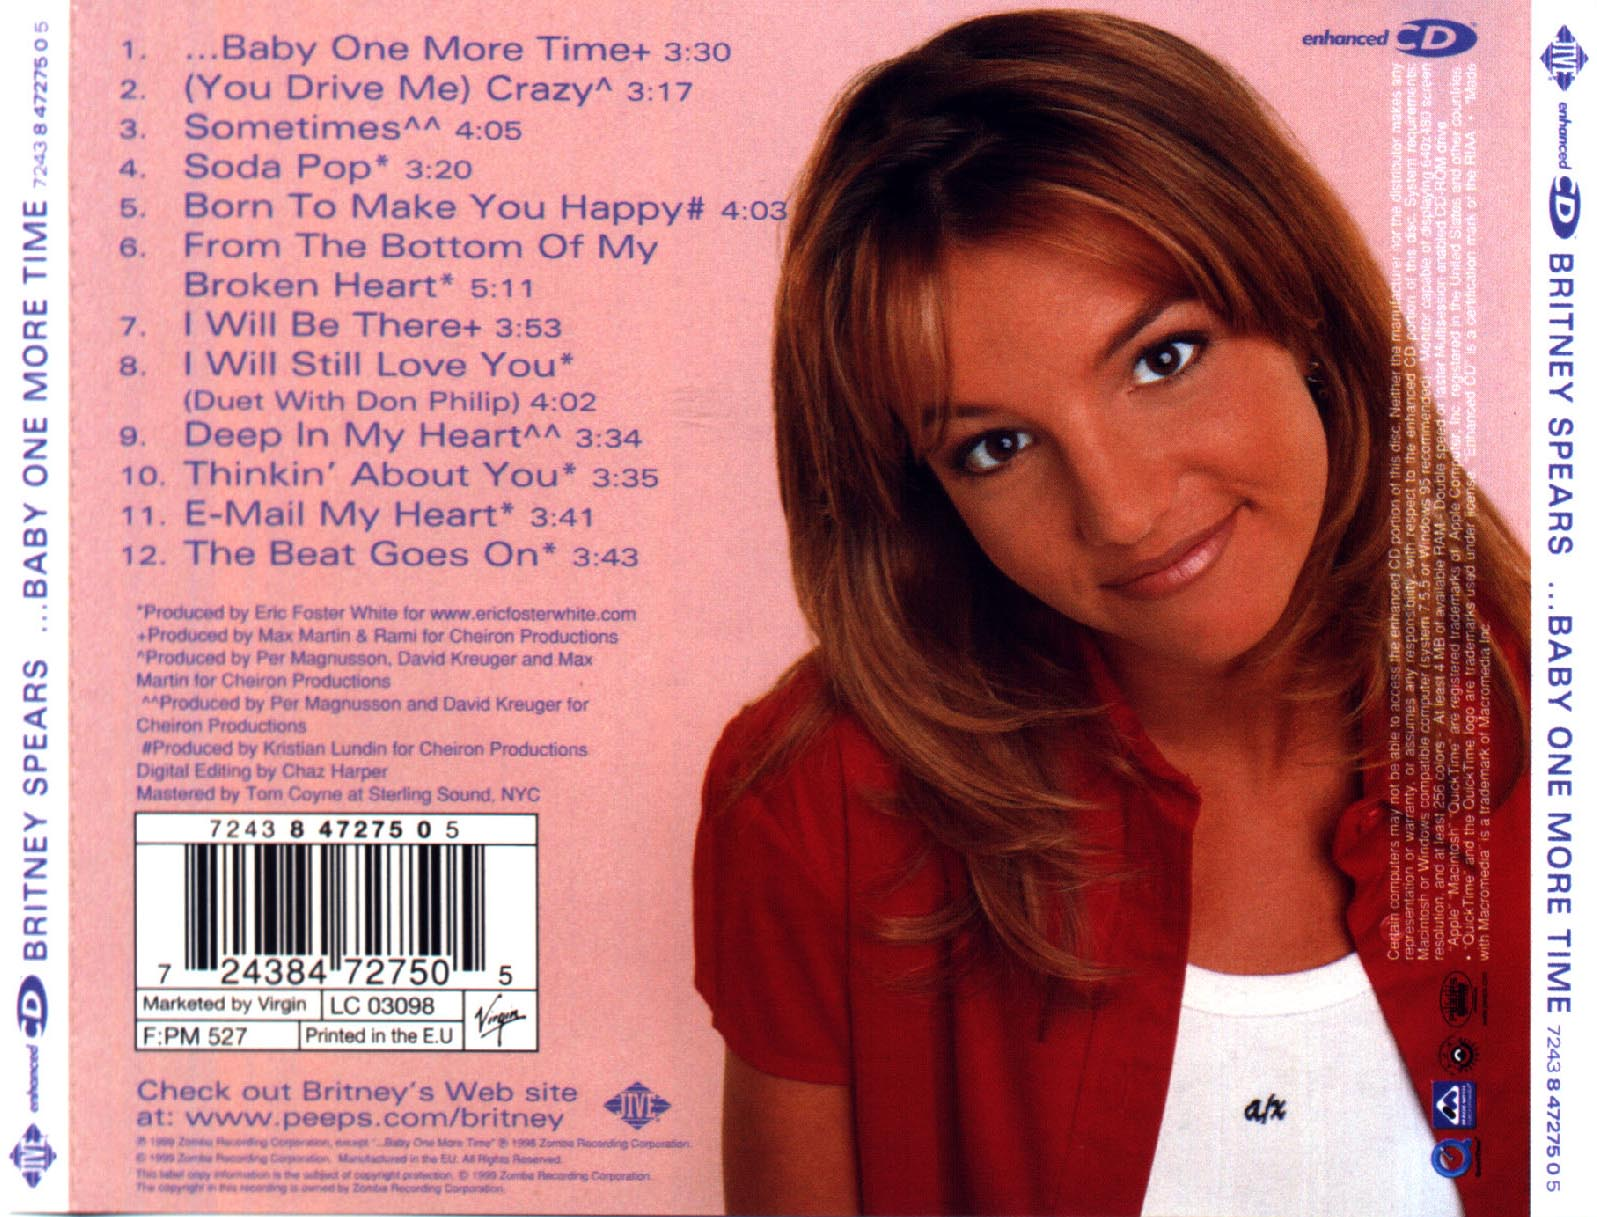 DOWNLOAD - CD - Britney Spears - Baby One More TimeBritney Spears Baby One More Time Album Cover